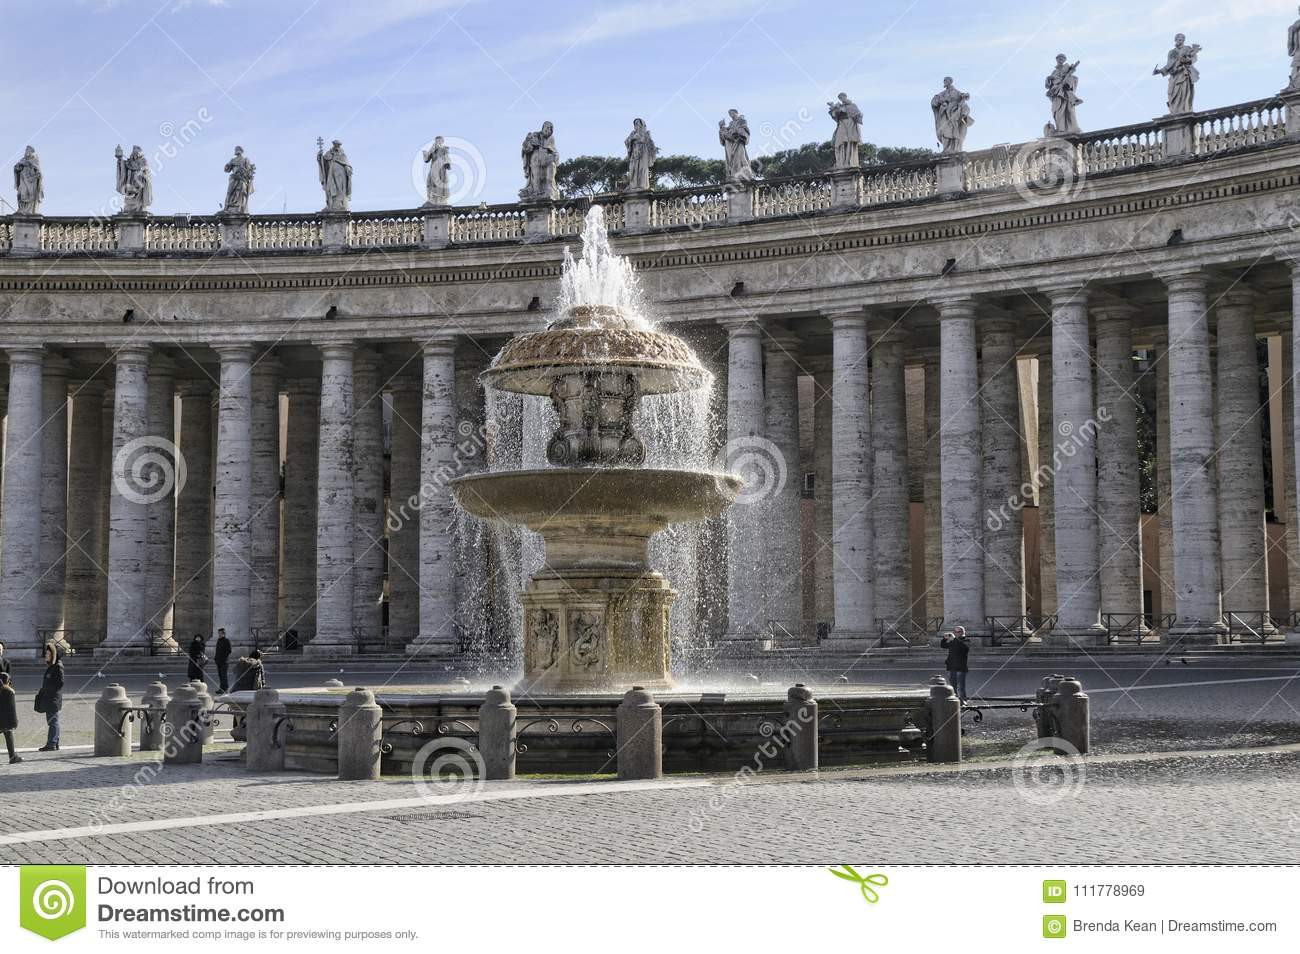 The Beautifil Fountains in St Peters Square in Rome